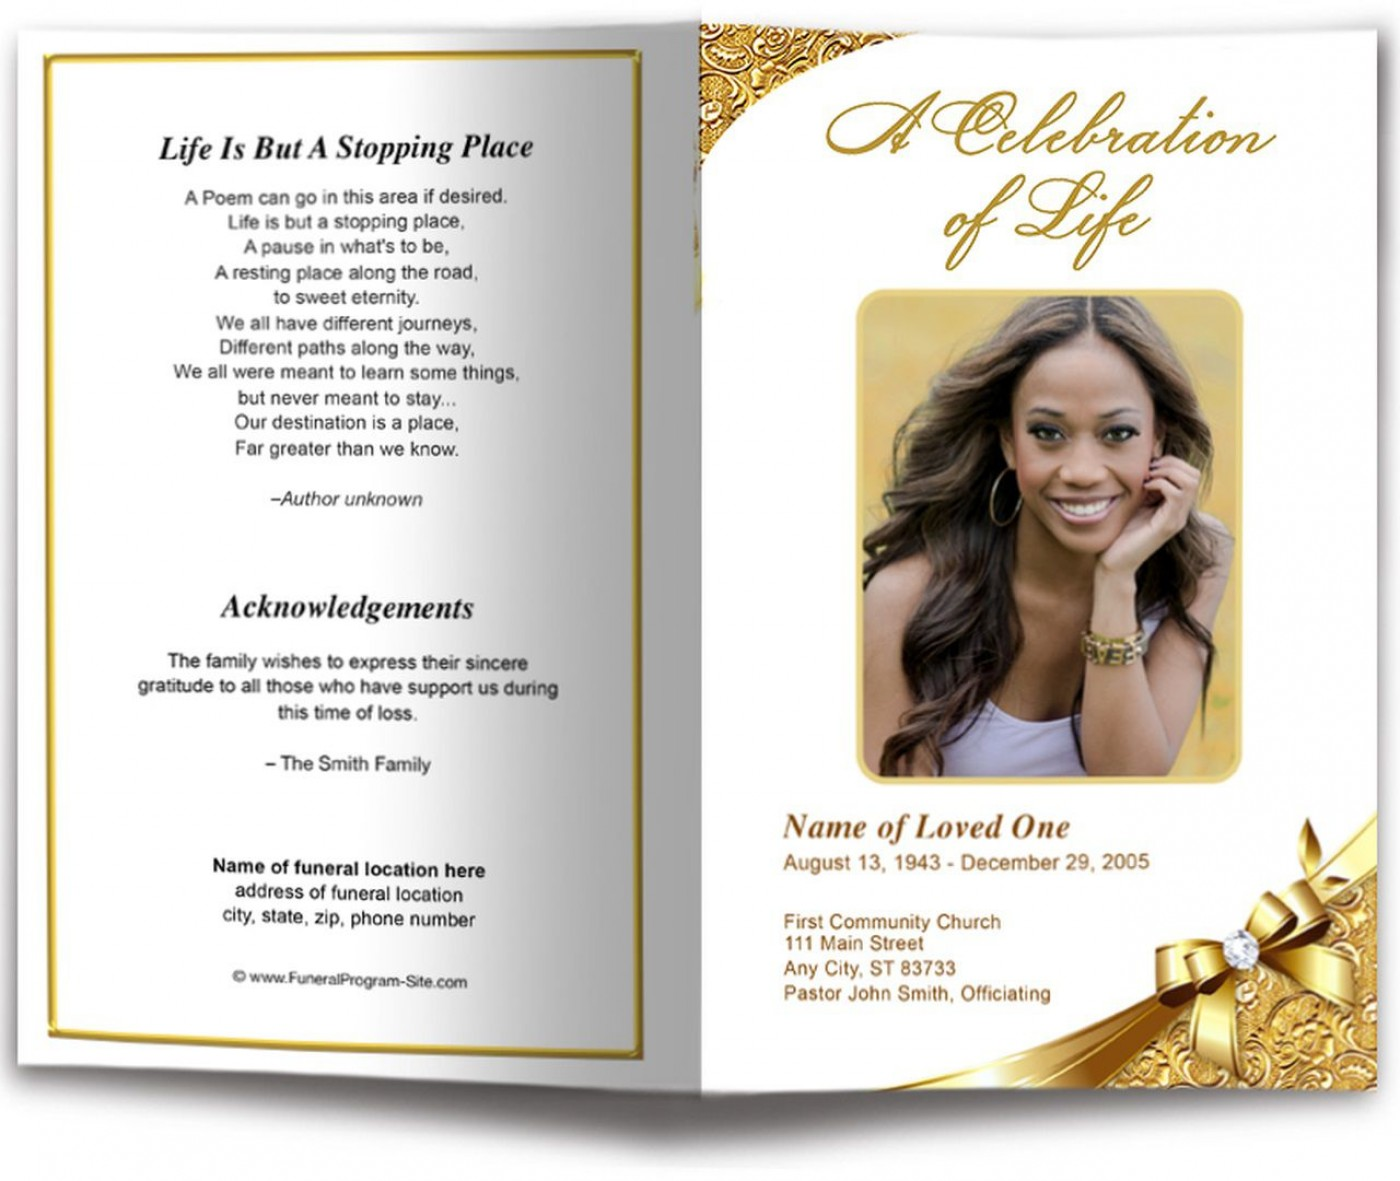 007 Astounding Funeral Program Template Free Example  Blank Microsoft Word Layout Editable Uk1400